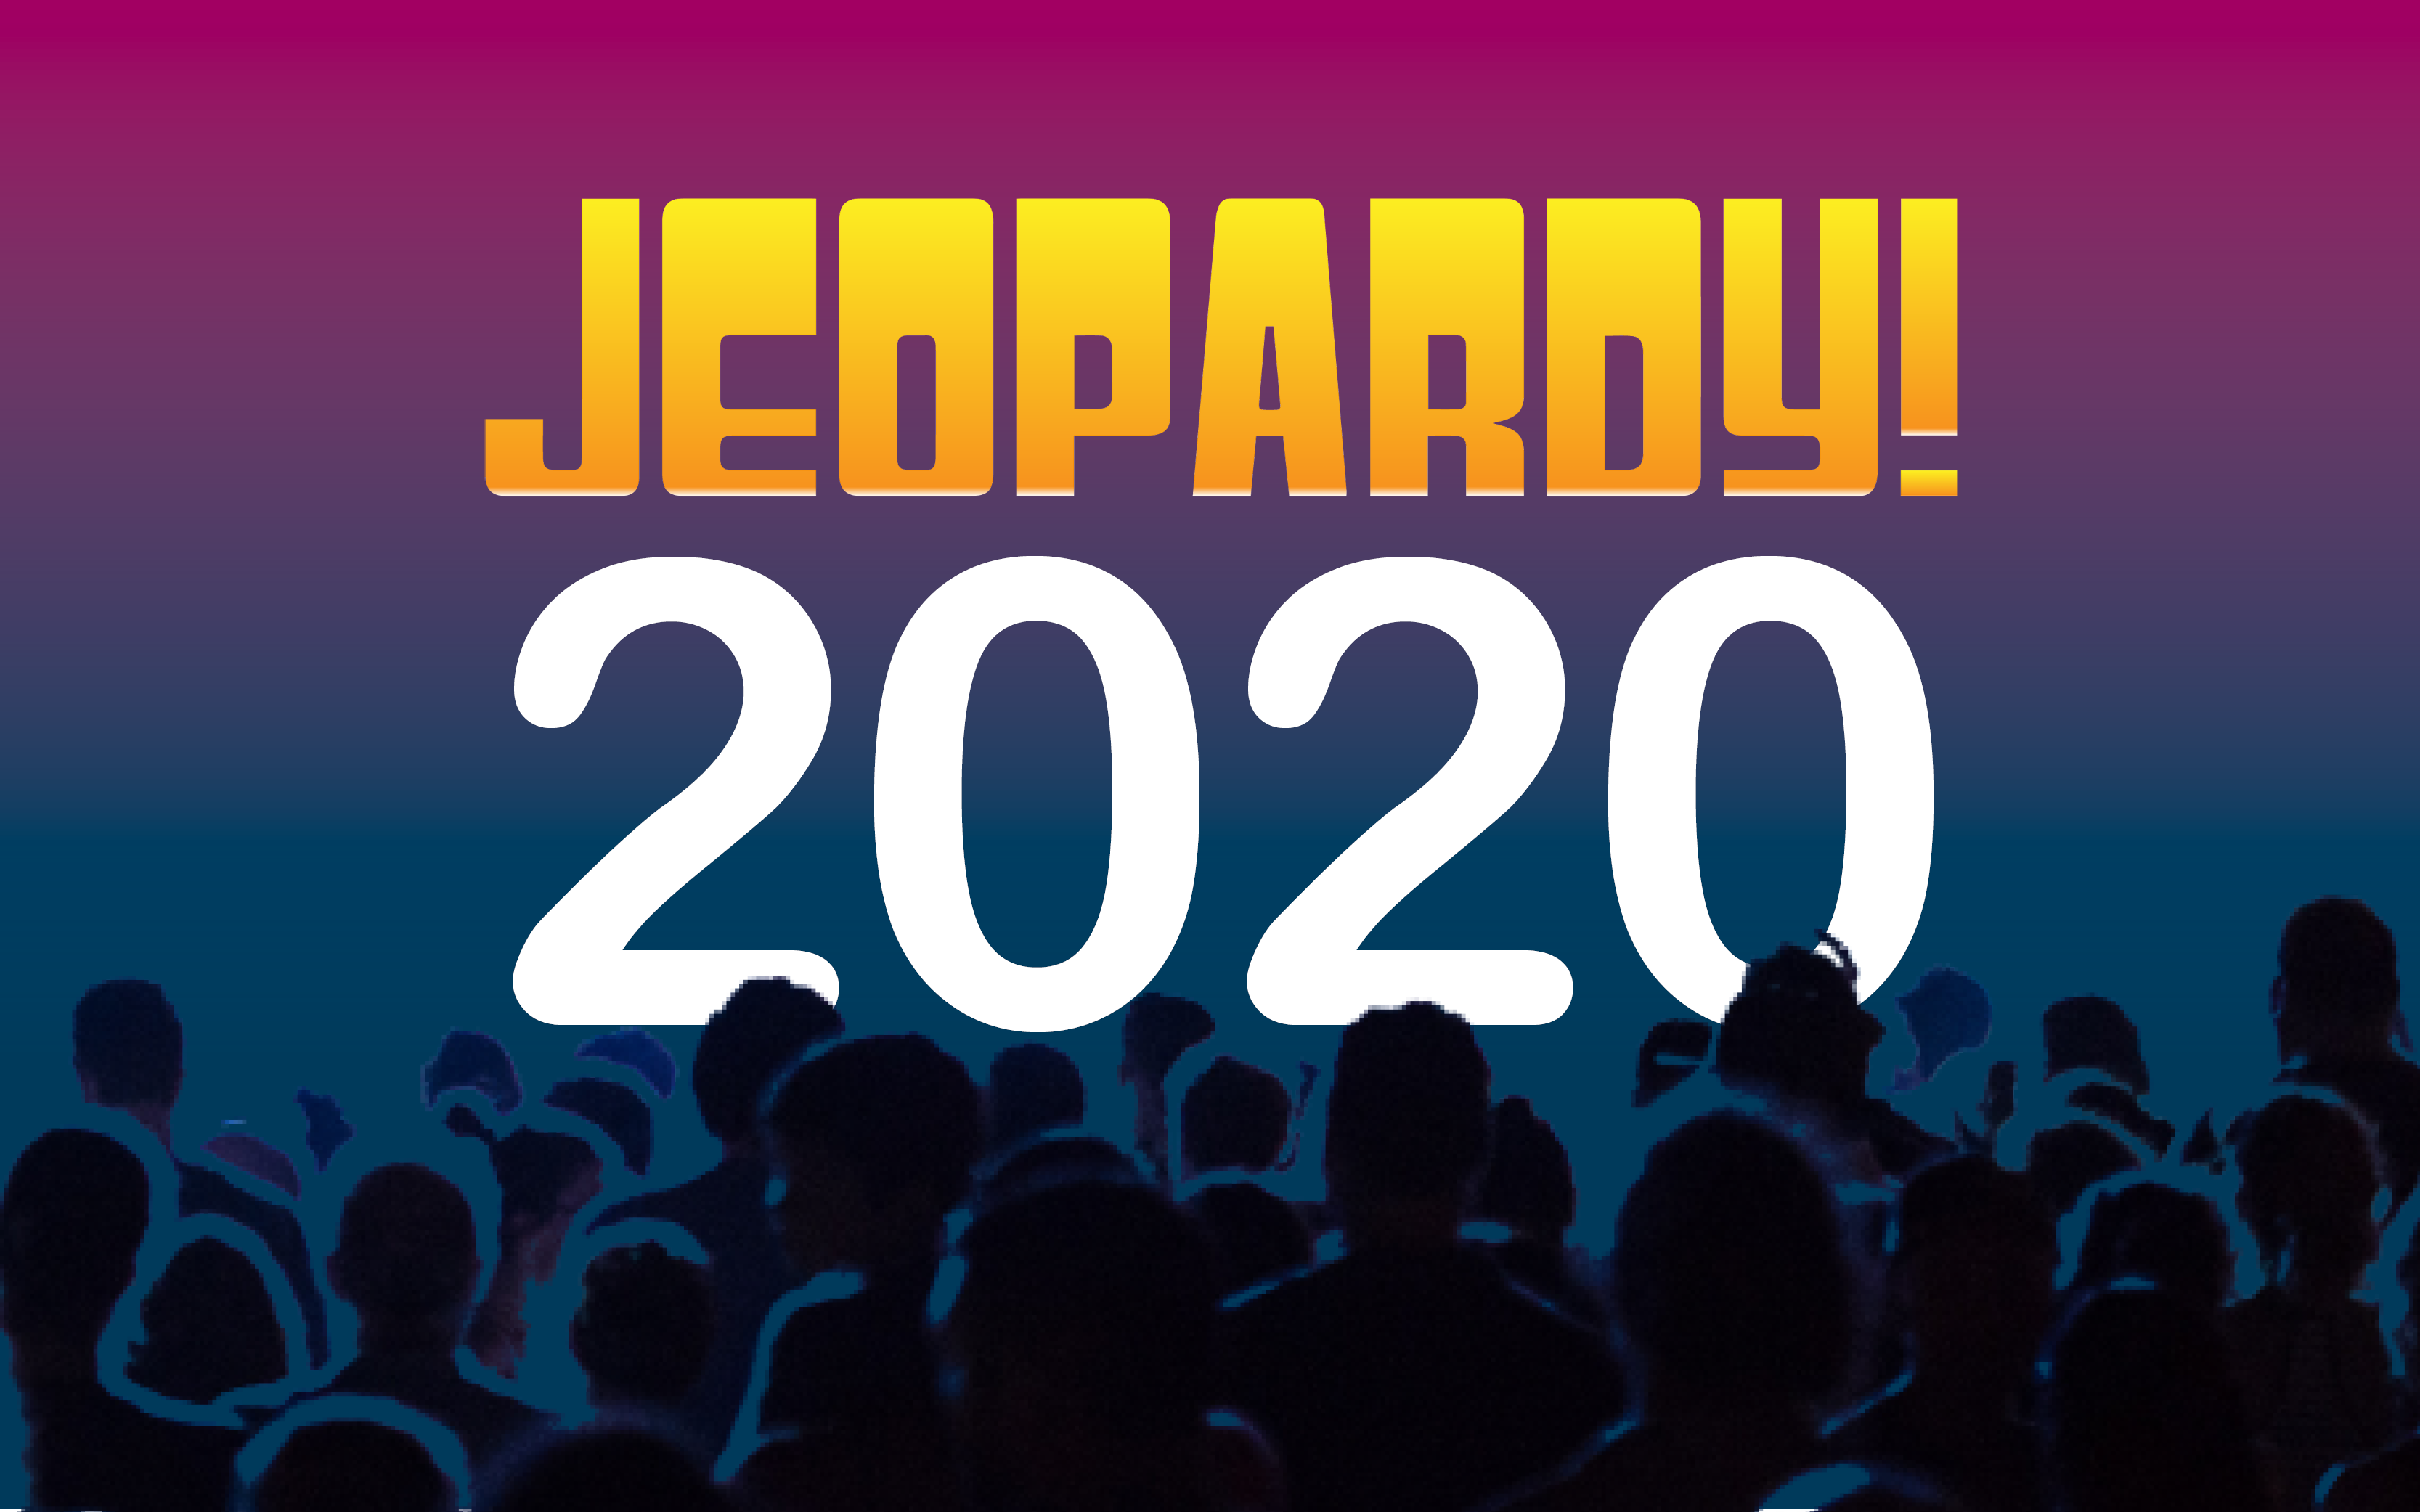 Jeopardy! 2020